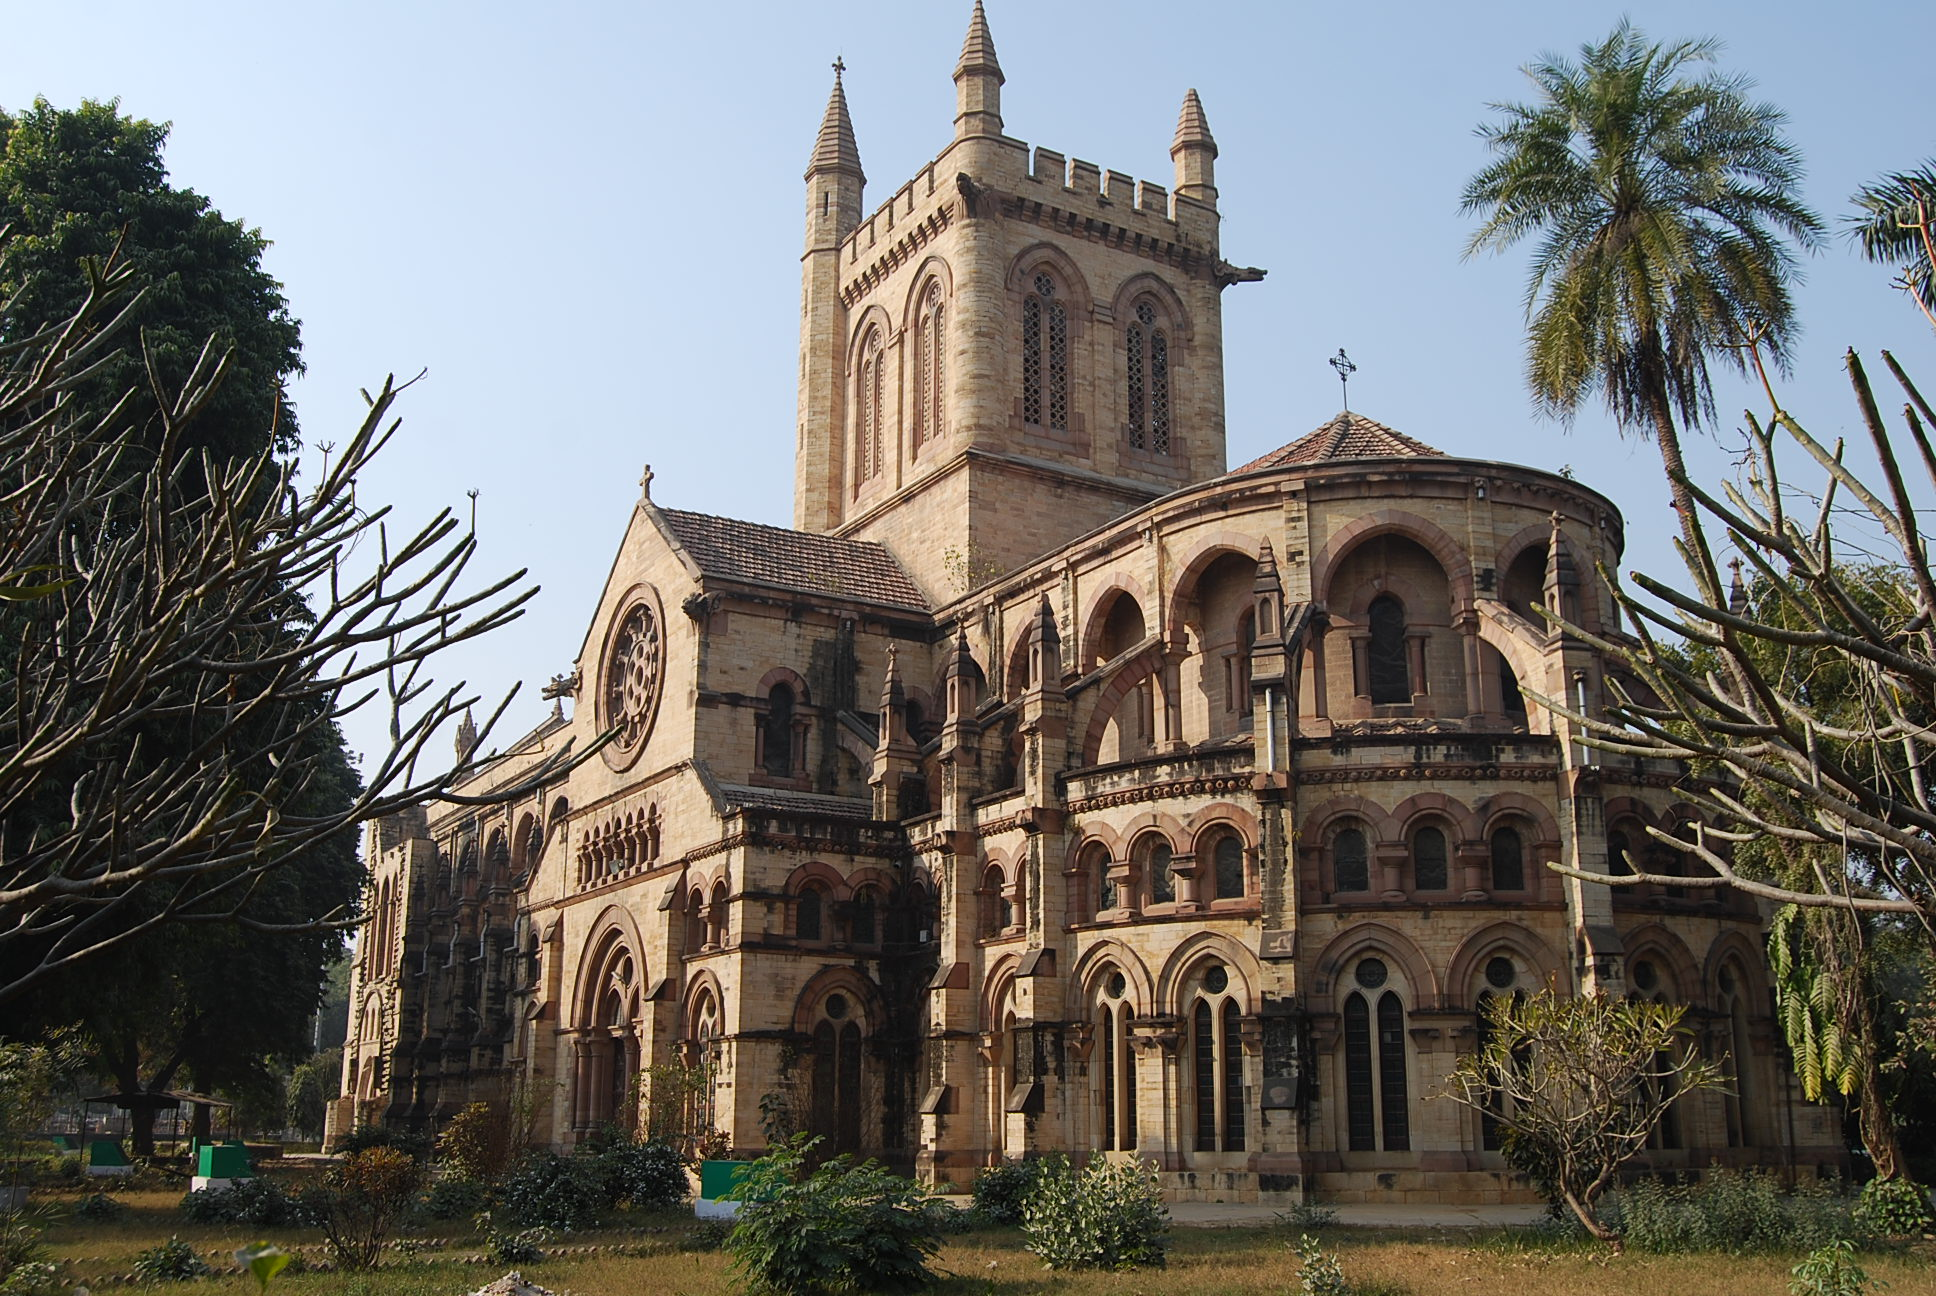 This photograph is taken of a Cathedral located in Allahabad. Its built in Gothic architectural style that makes it interesting.